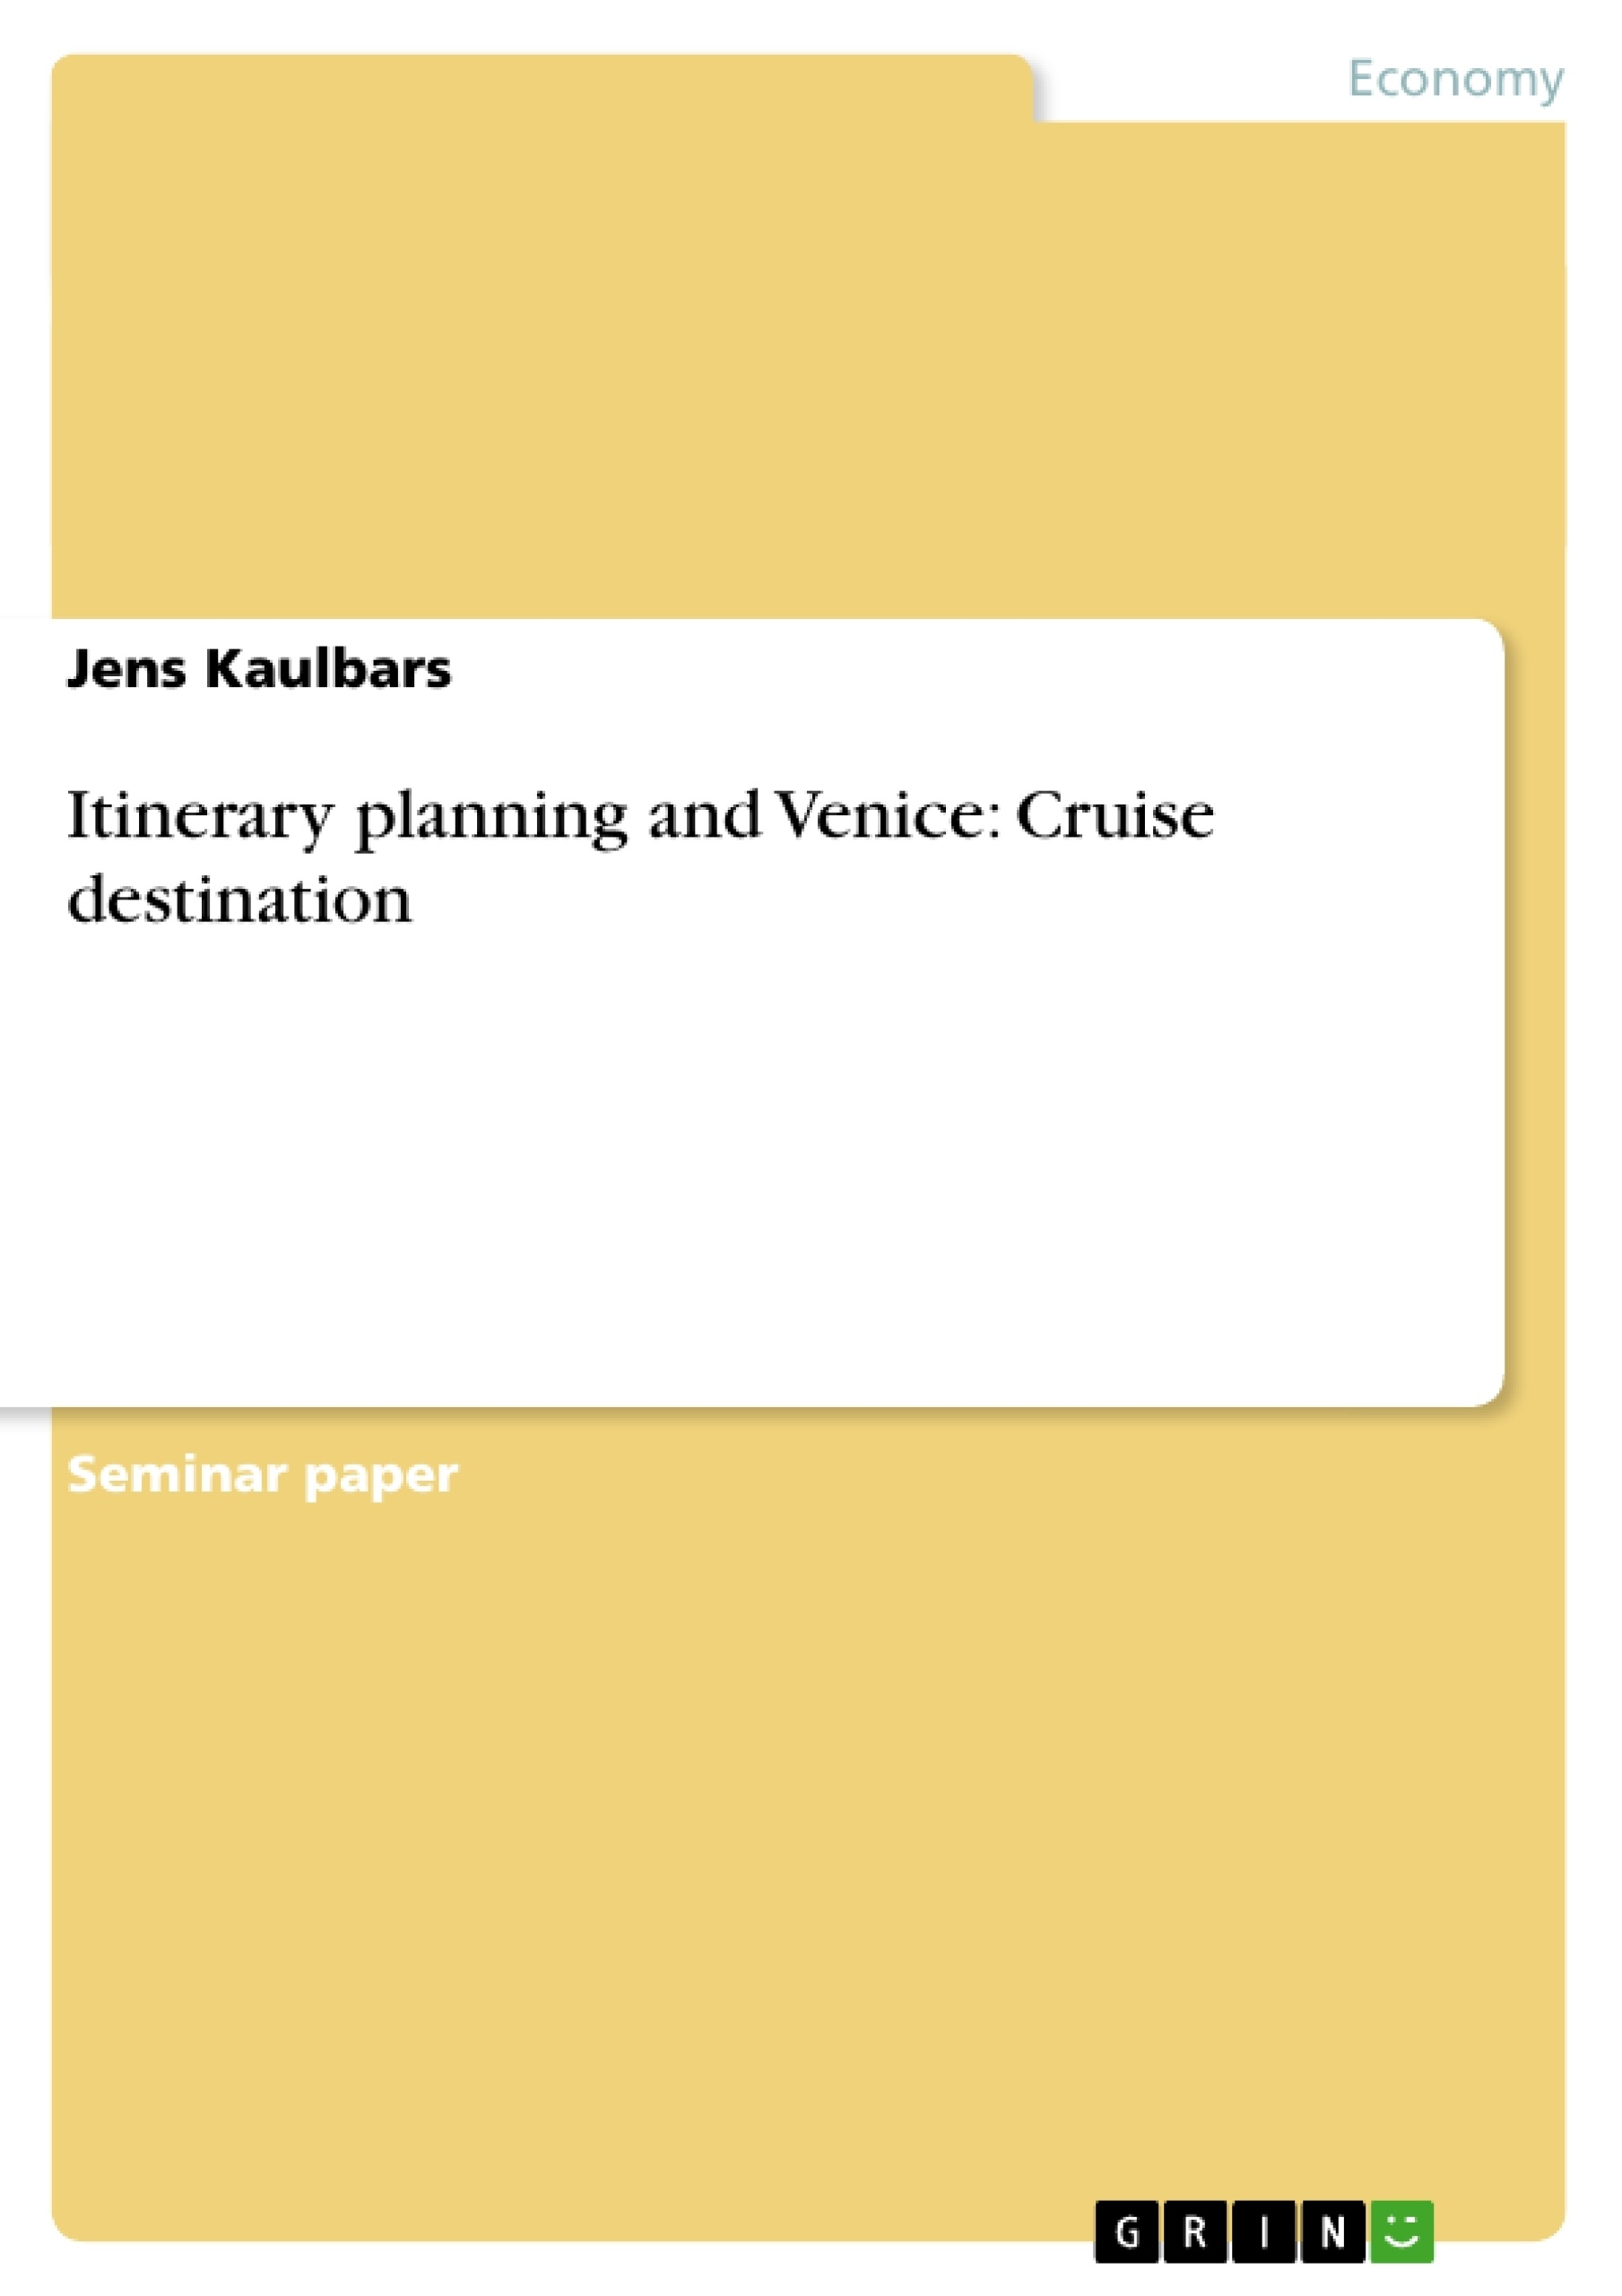 Title: Itinerary planning and Venice: Cruise destination